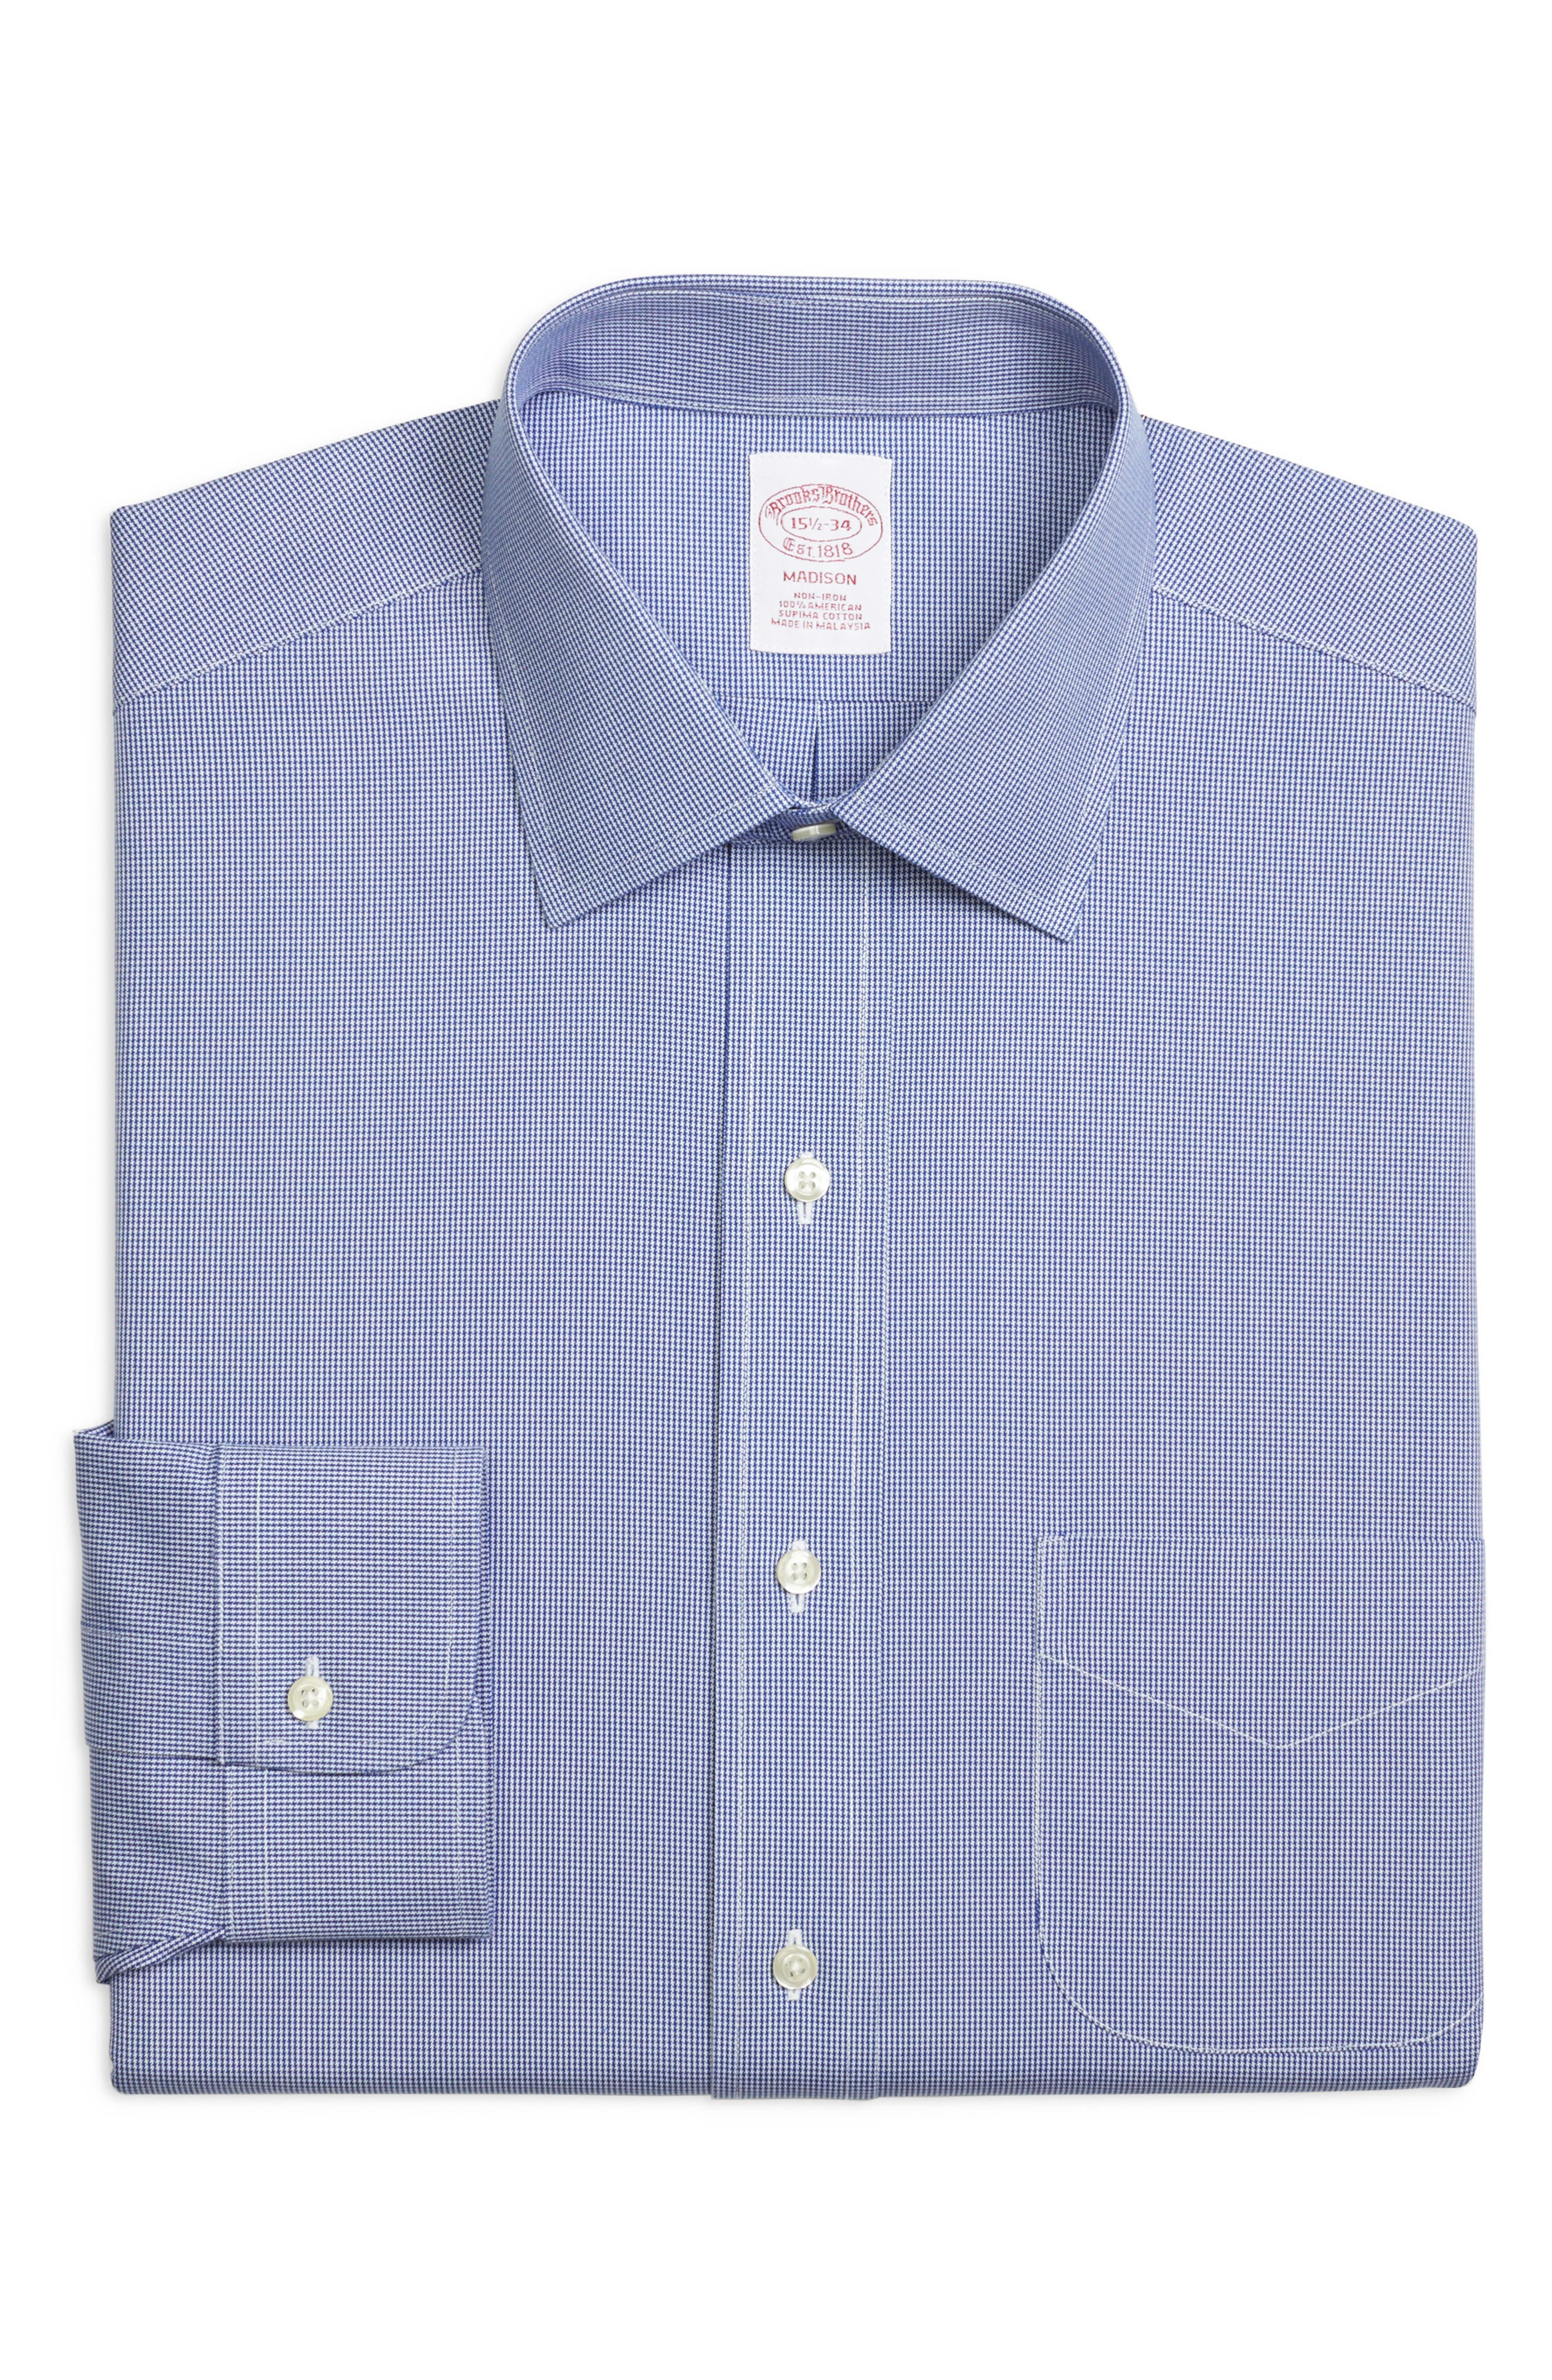 Classic Fit Houndstooth Dress Shirt,                             Main thumbnail 1, color,                             BLUE